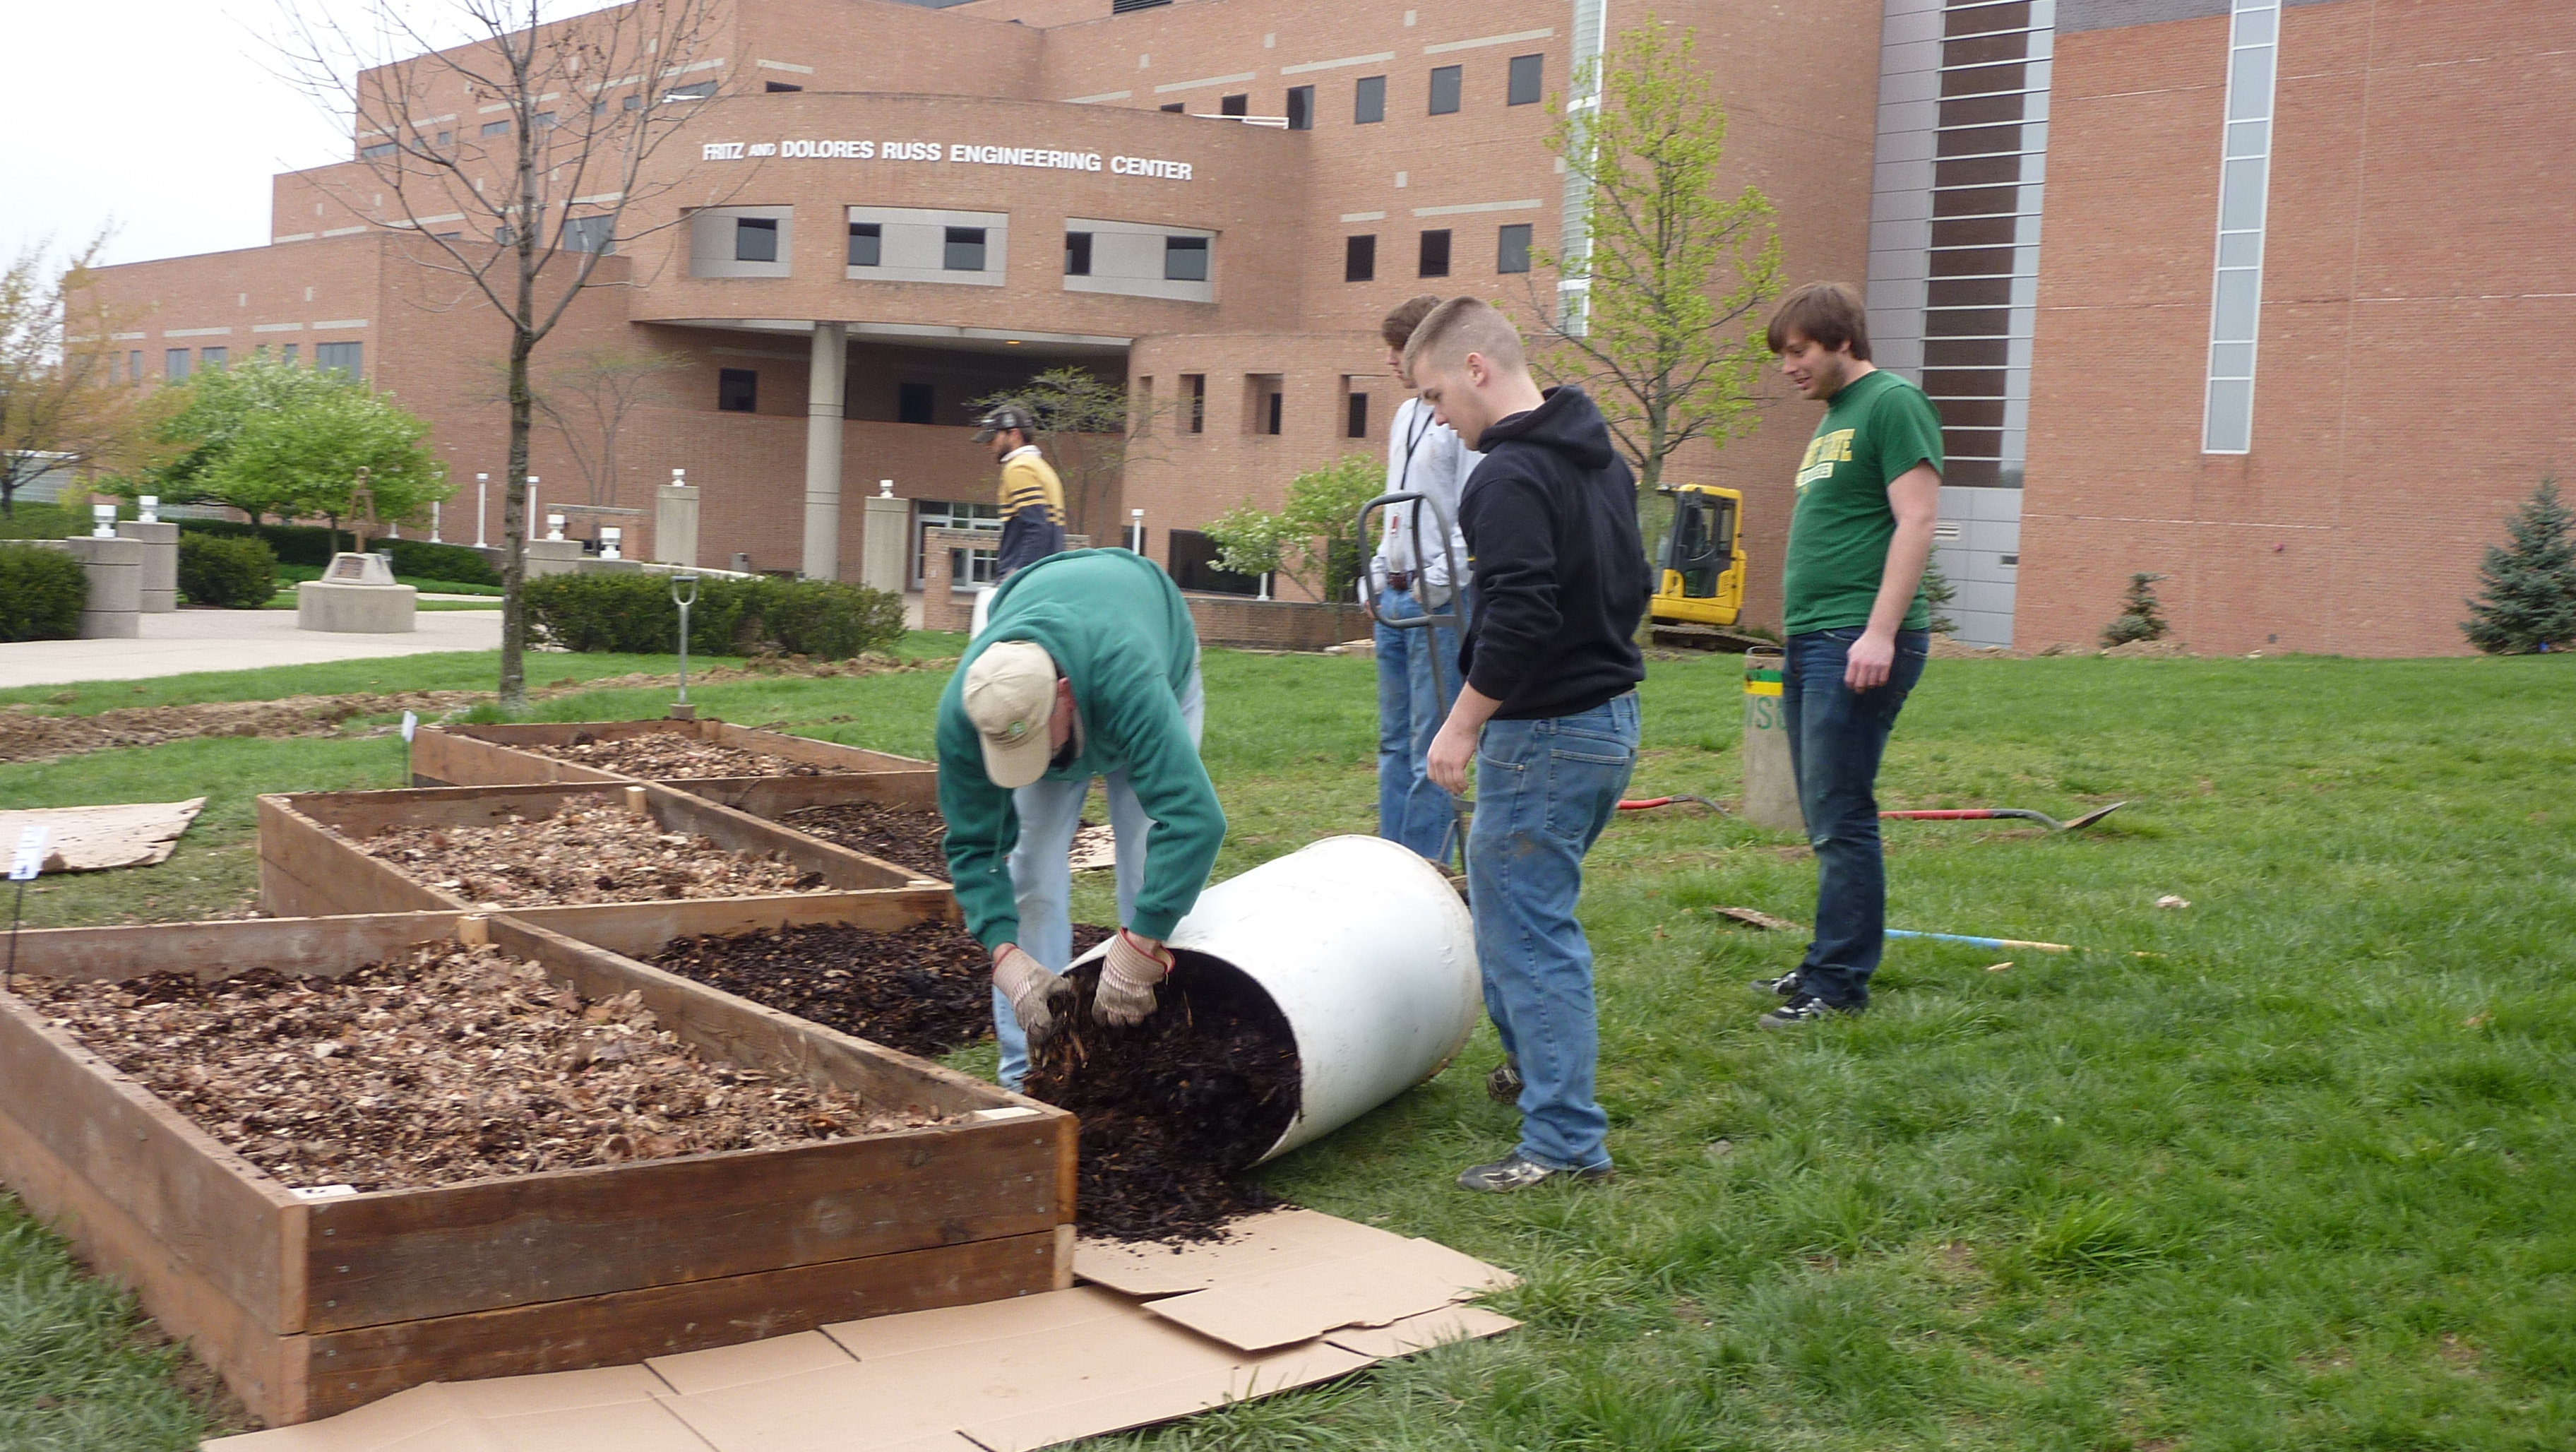 Campus community garden constructed, events to follow